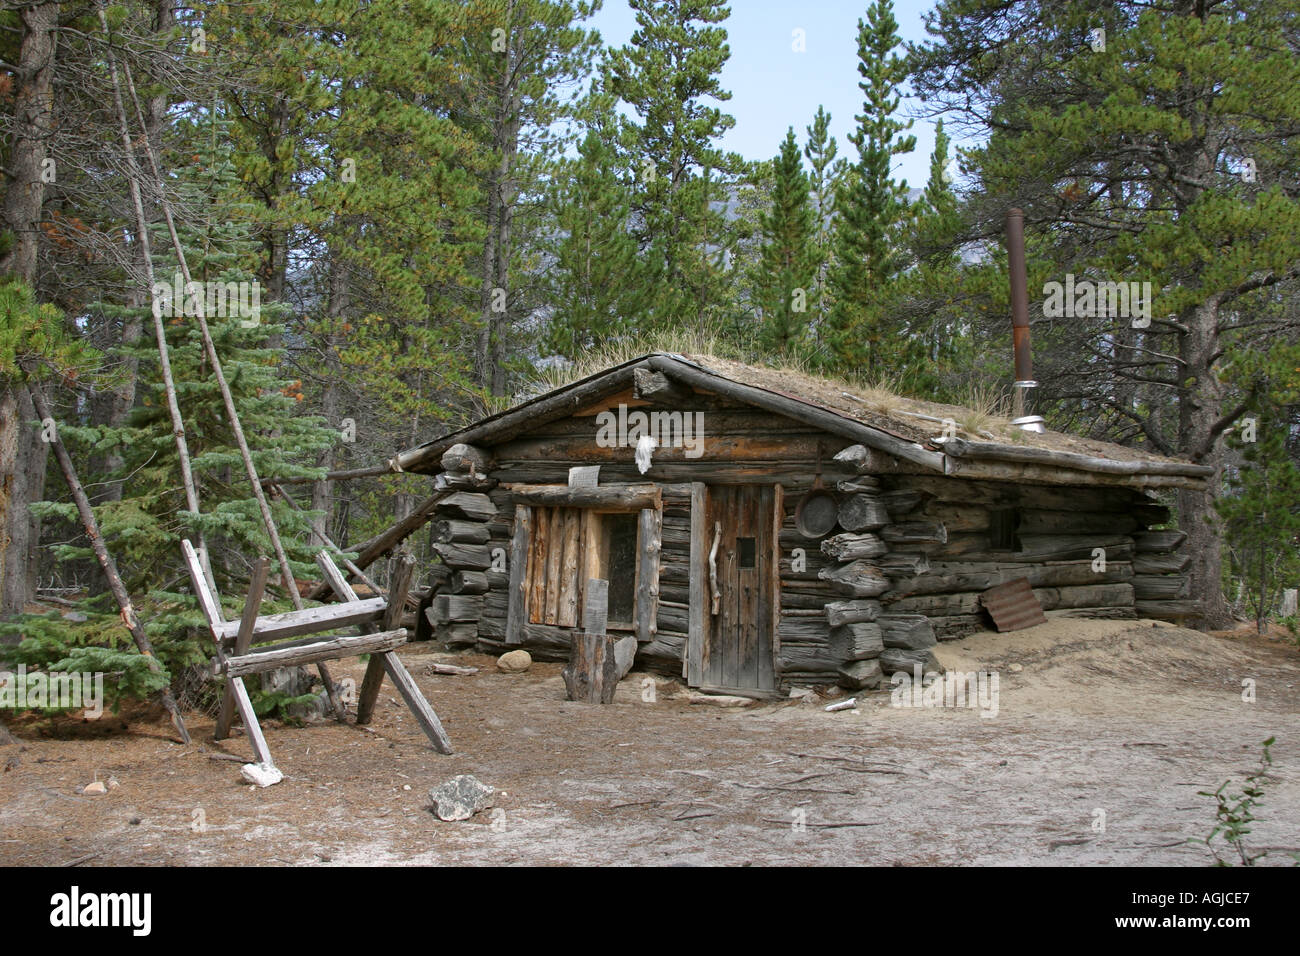 Log cabin chilkoot trail british columbia canada stock for Canadian log cabins